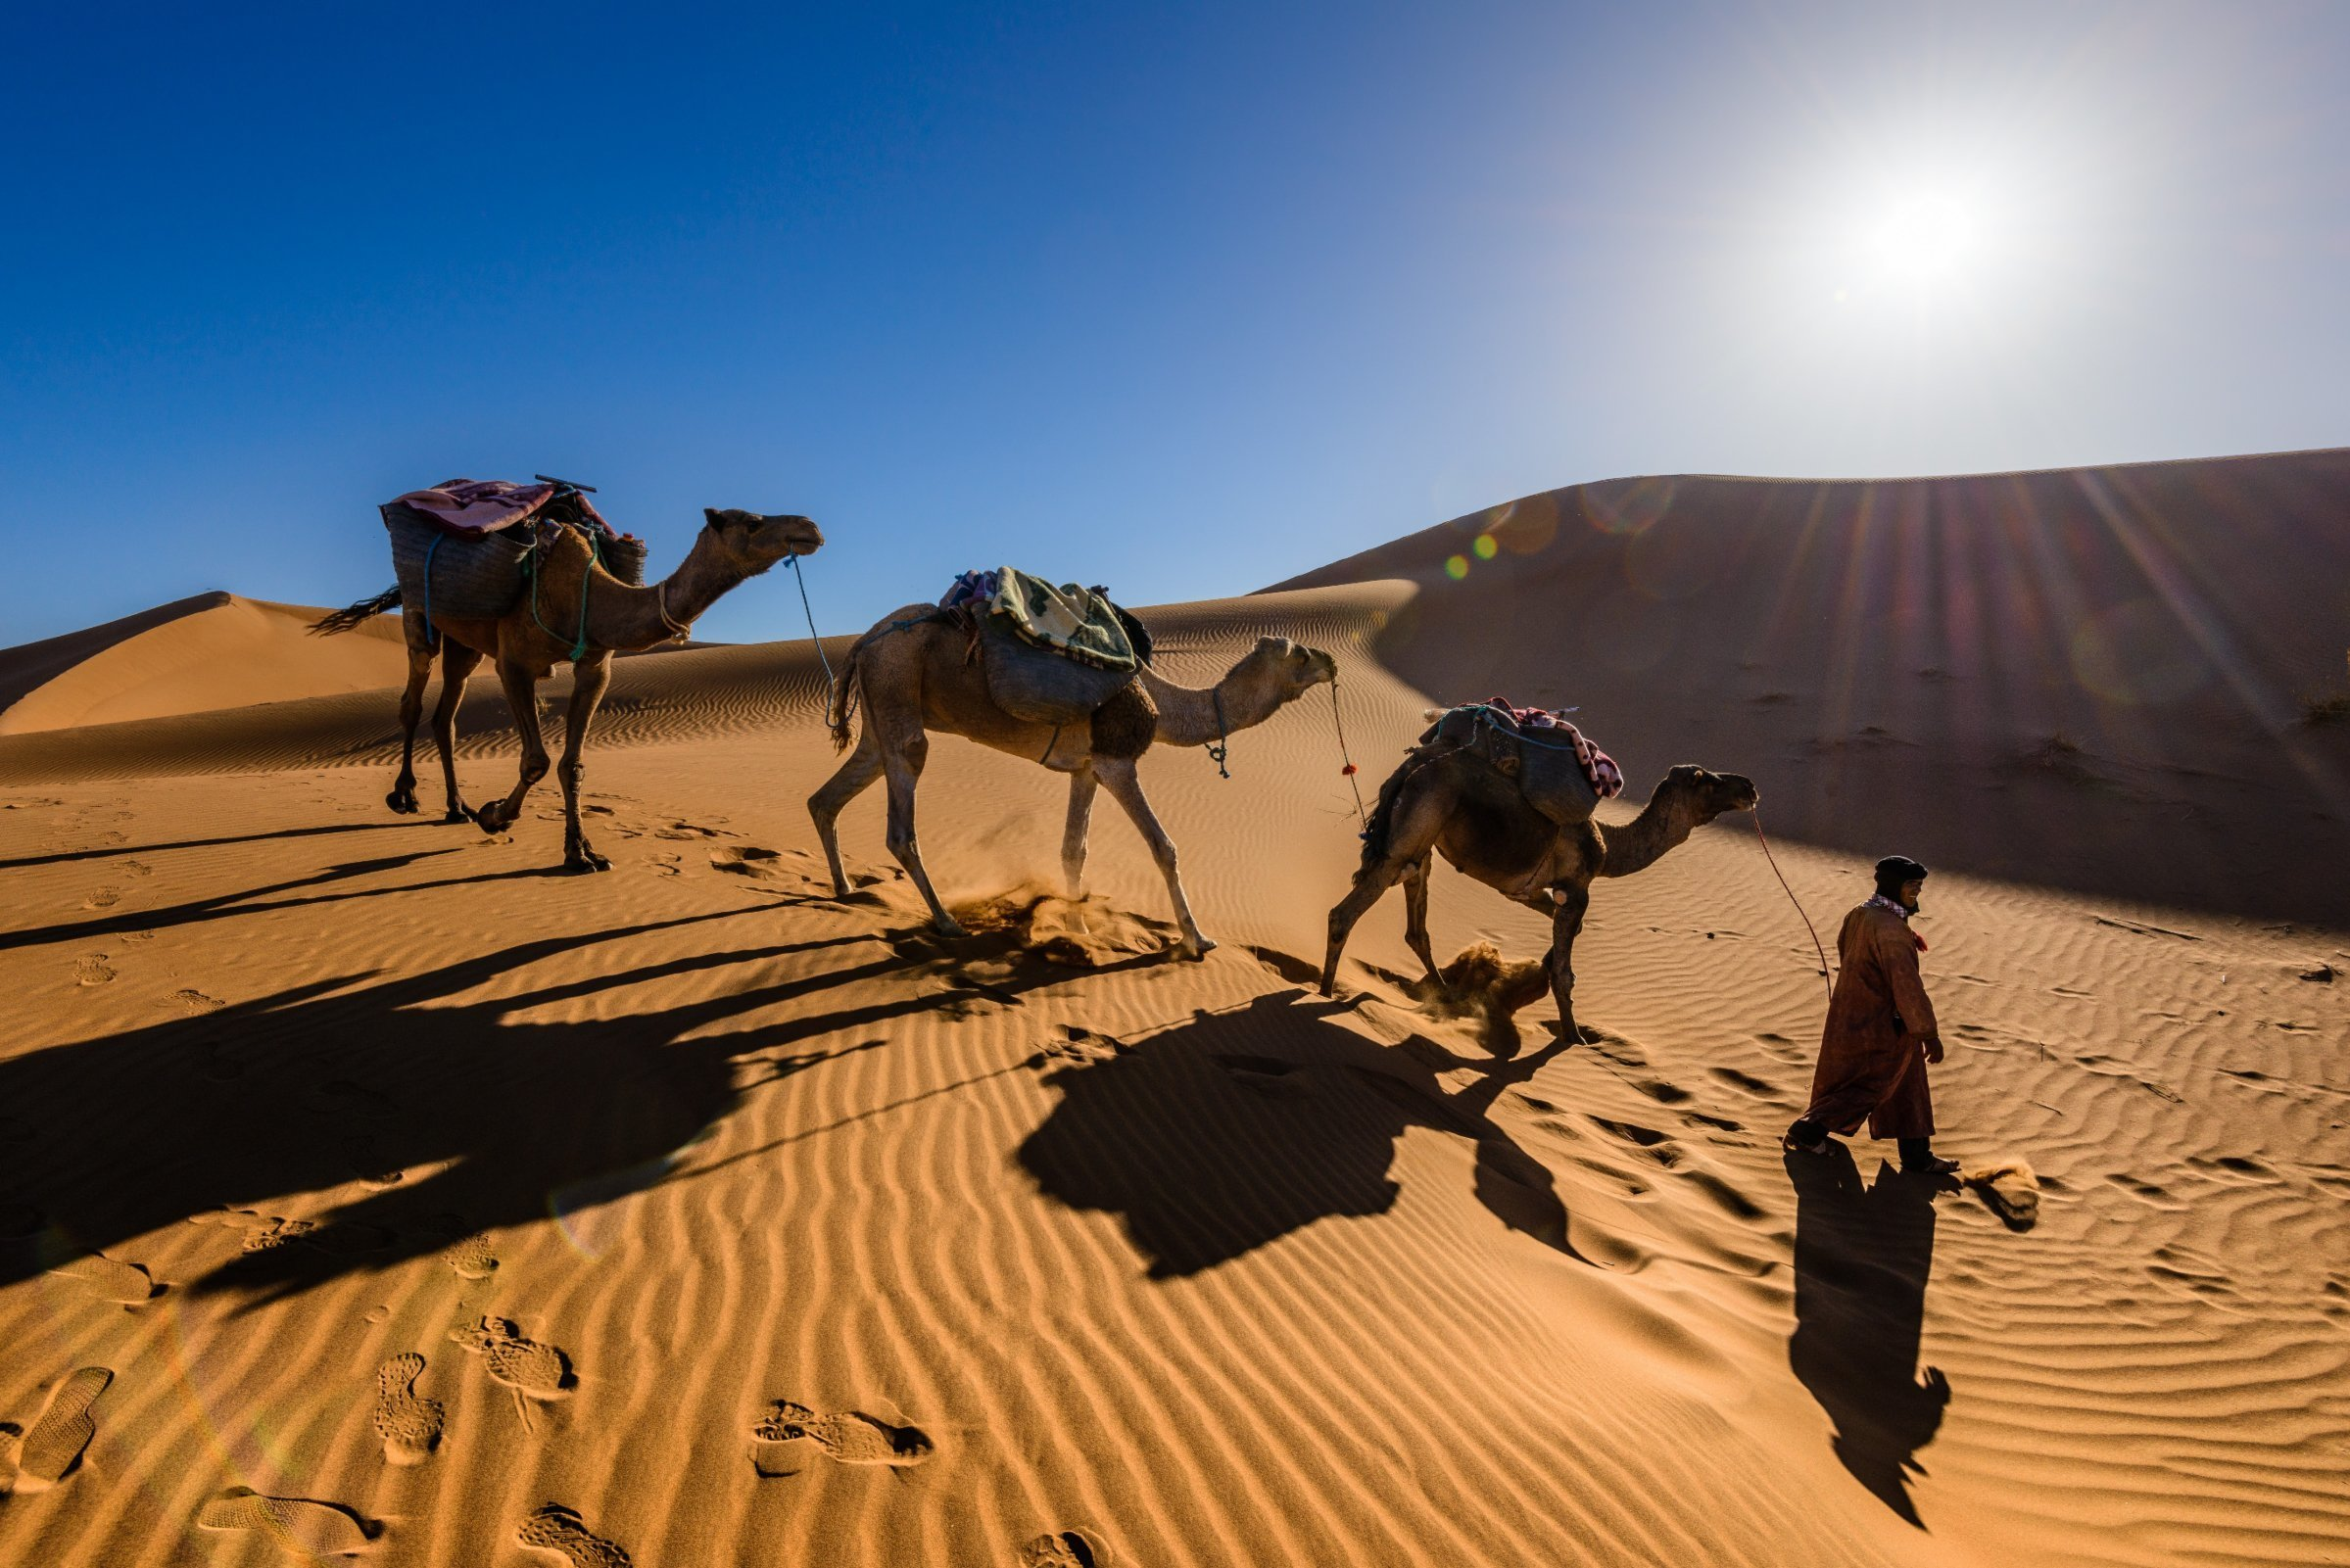 8-Day 4x4 Moroccan Highlights Adventure - Morocco Itinerary